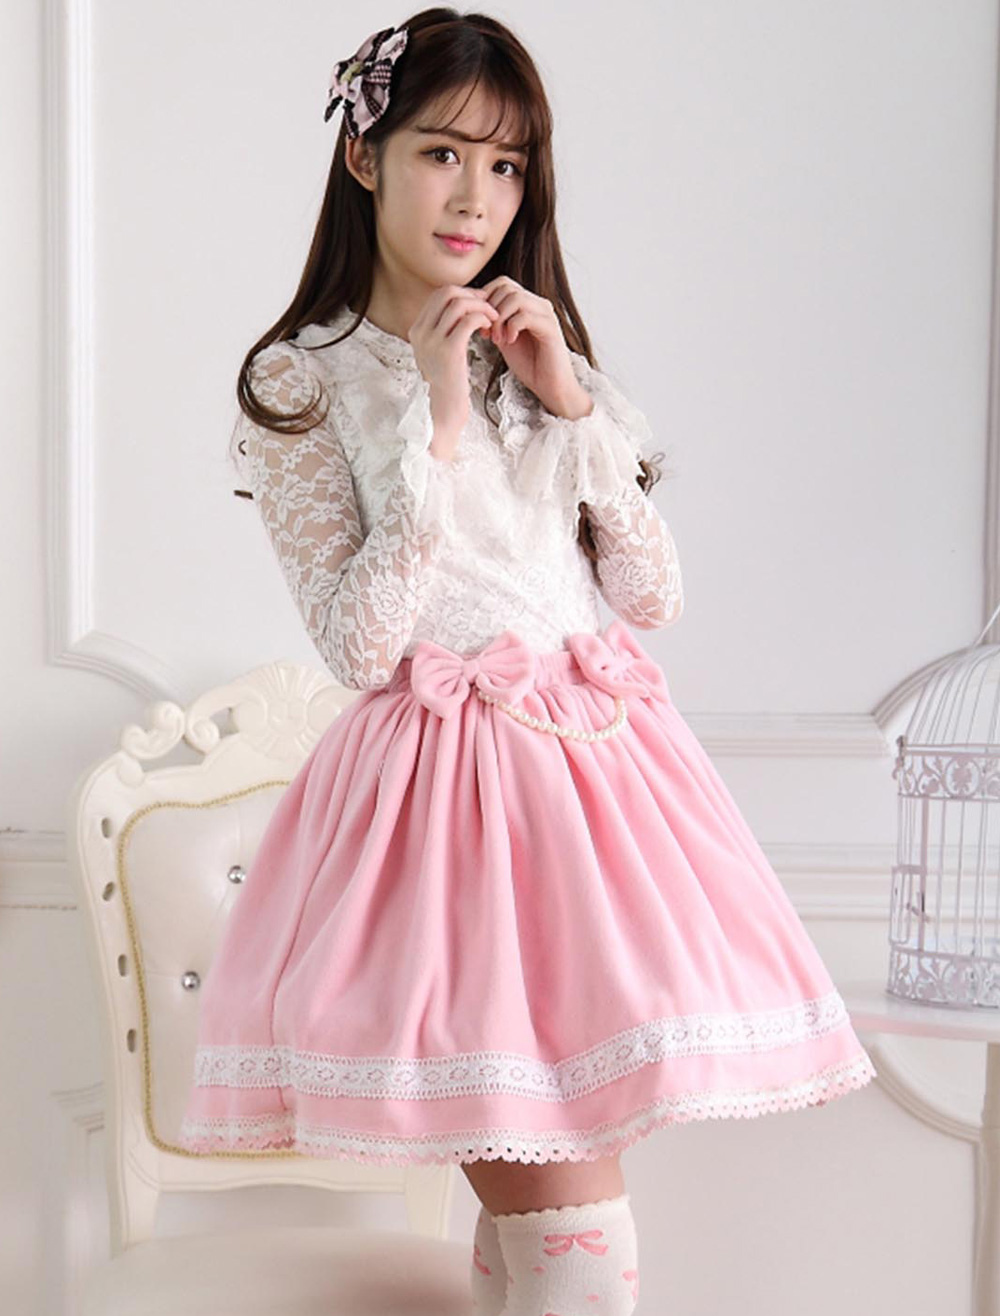 Sweet Pink Short Lolita Skirt with Whtie Trim Bows Pears